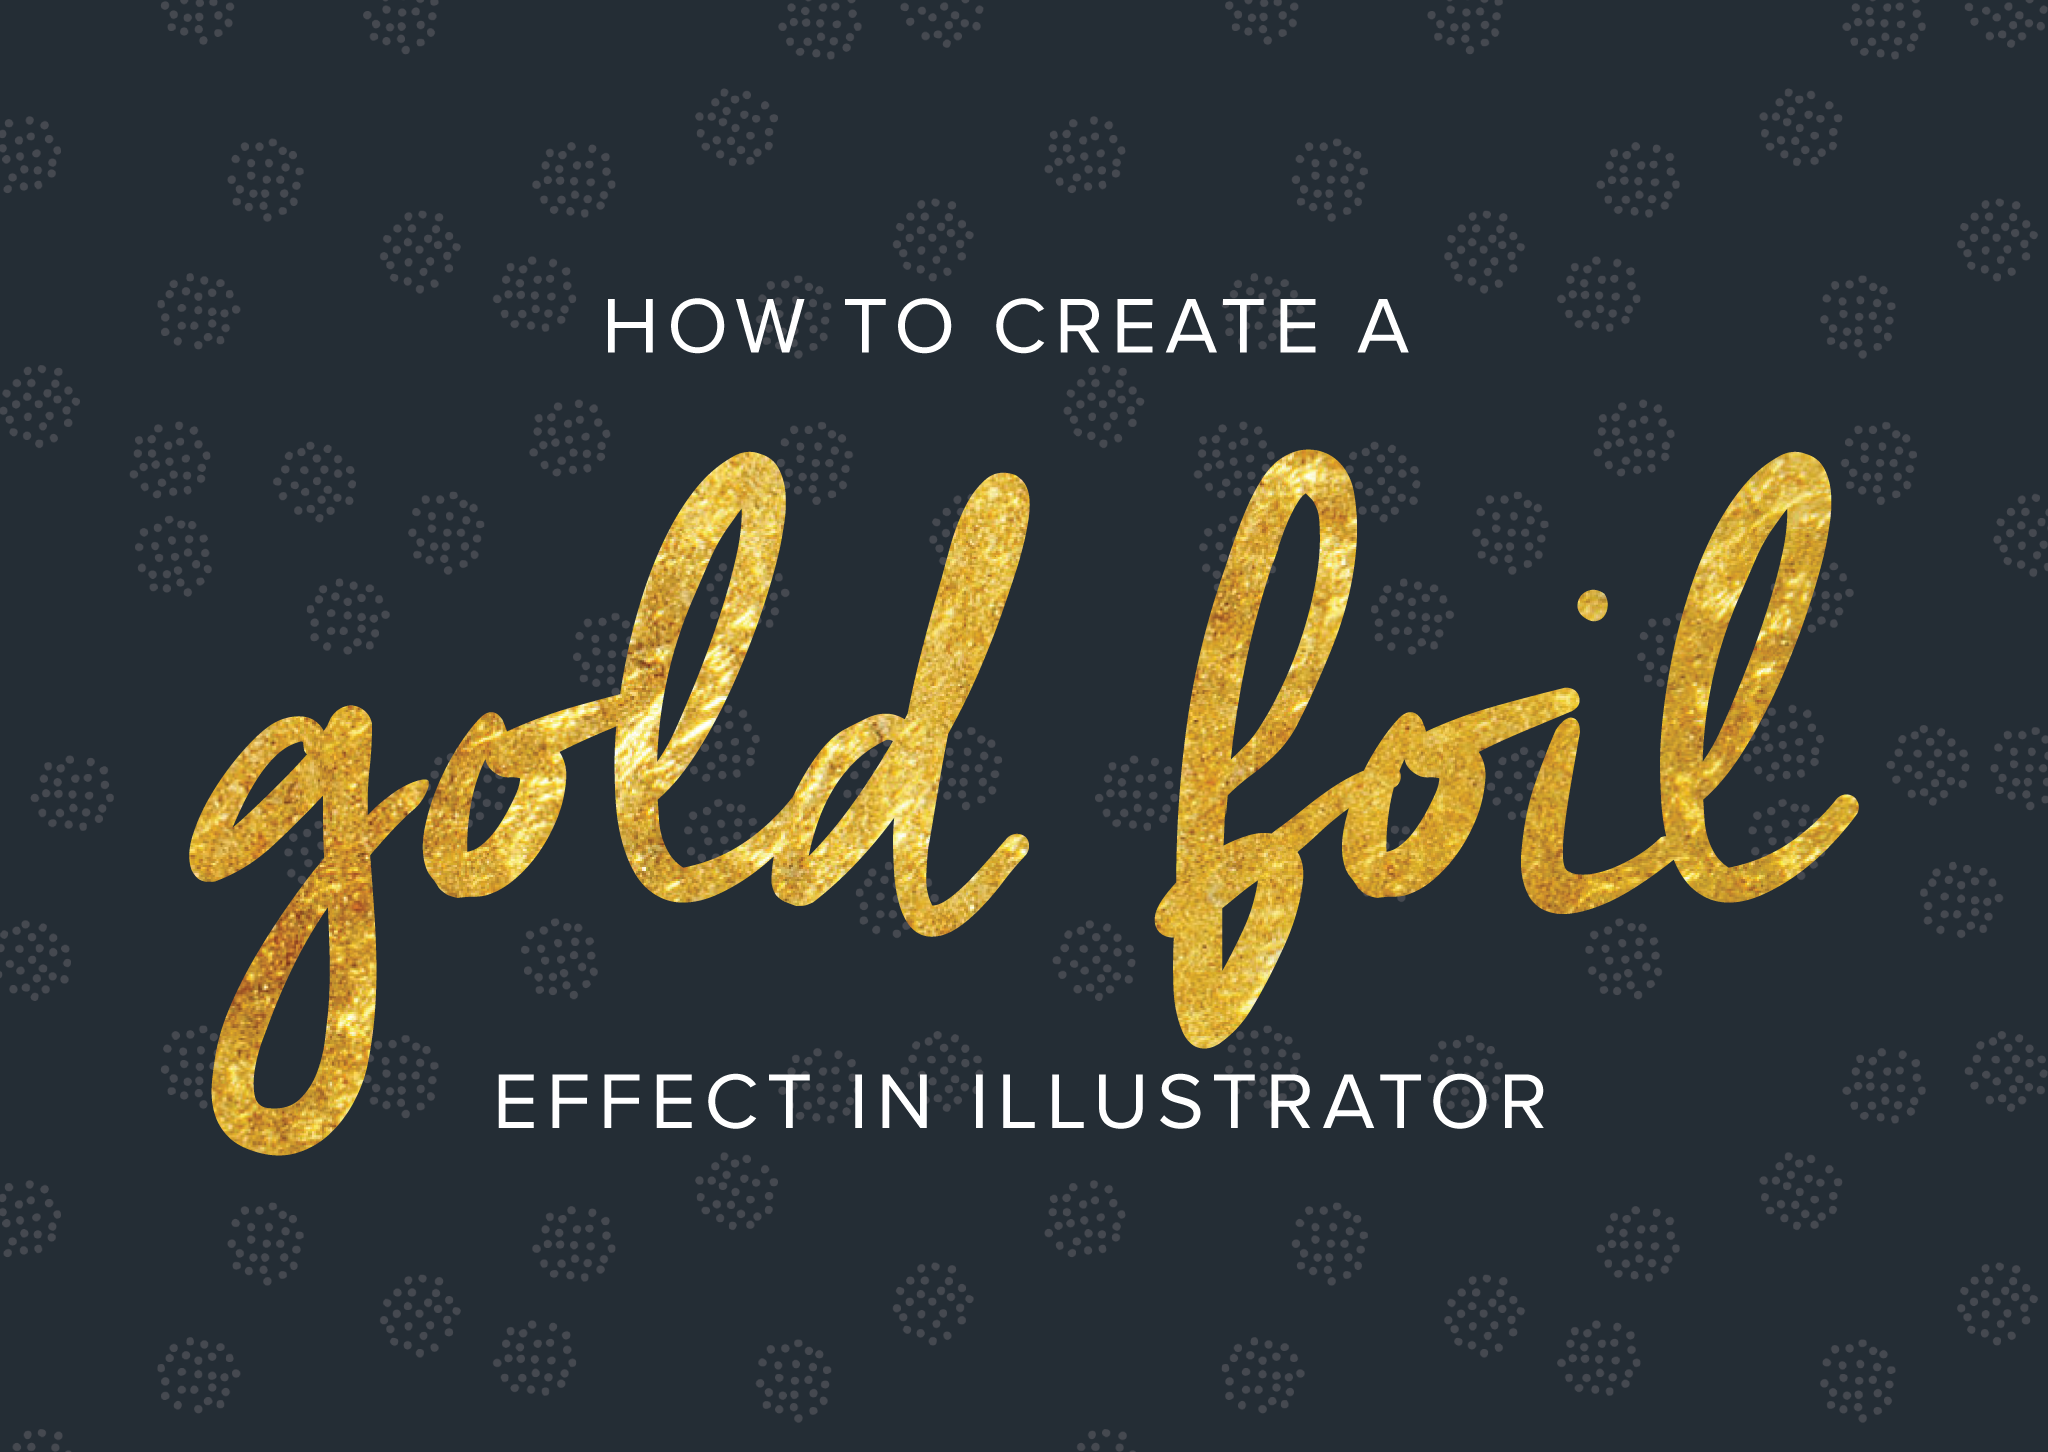 How to create a gold foil effect} perfect starter tutorial, I've